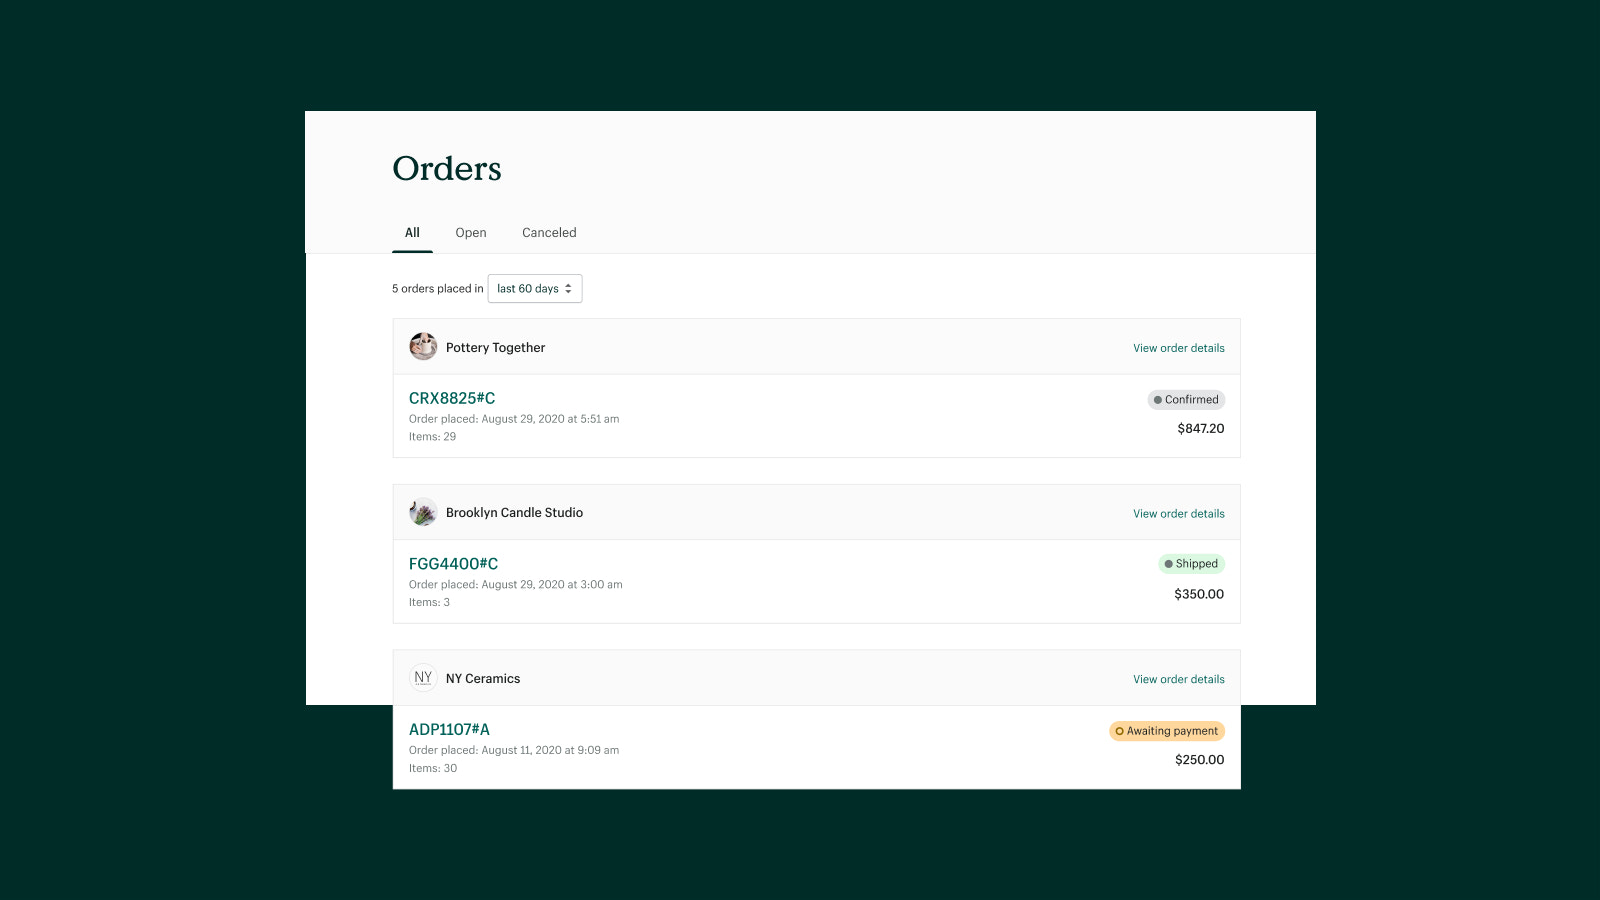 Easily track the status of every order placed on Handshake.